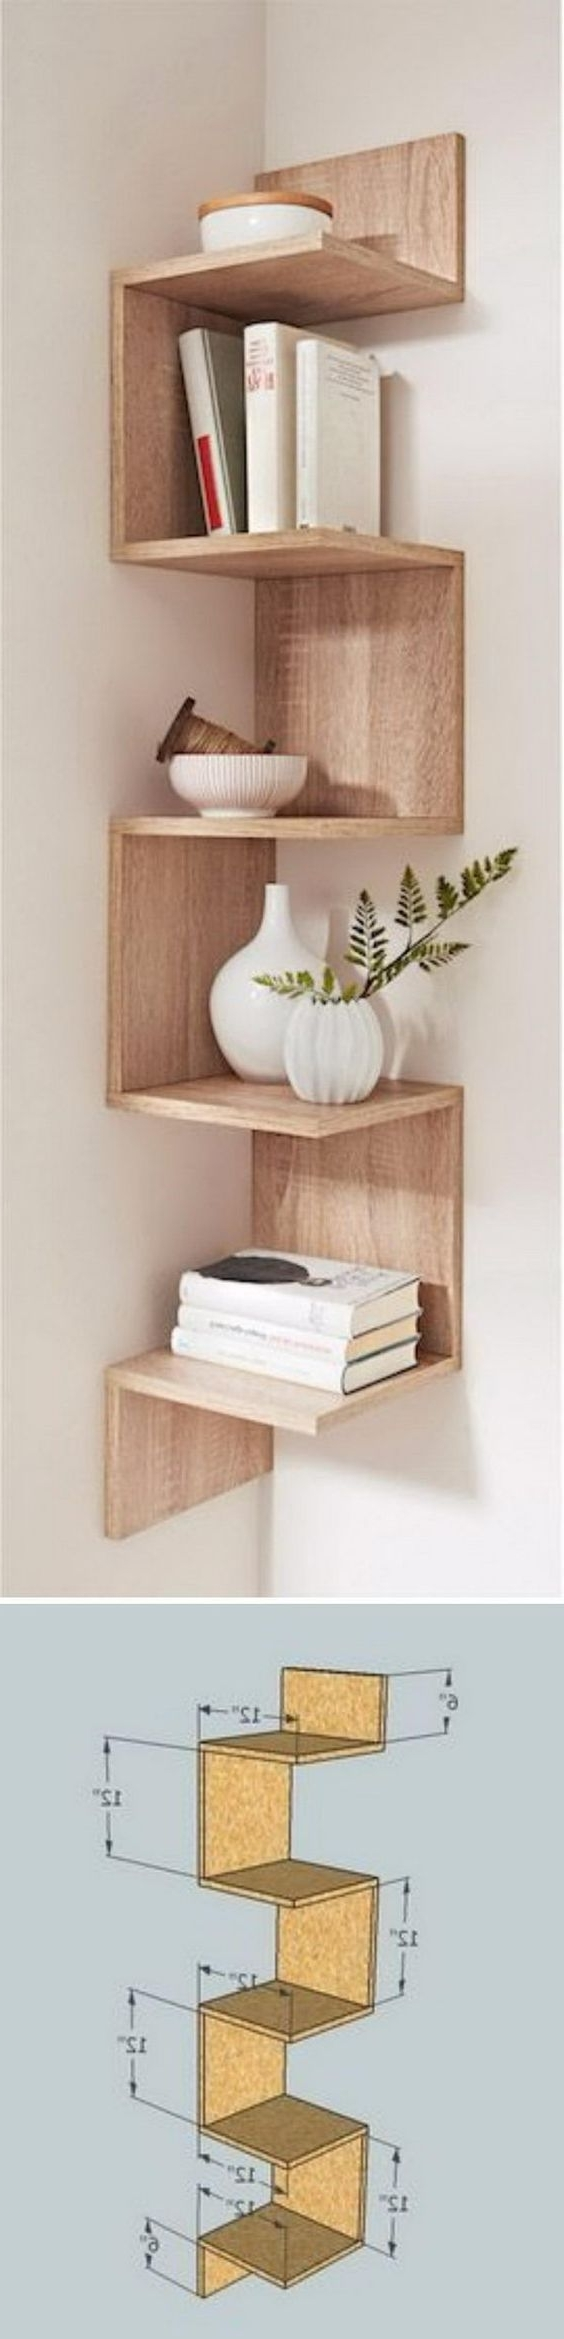 Shelf Ideas, Box Shelves (View 12 of 15)